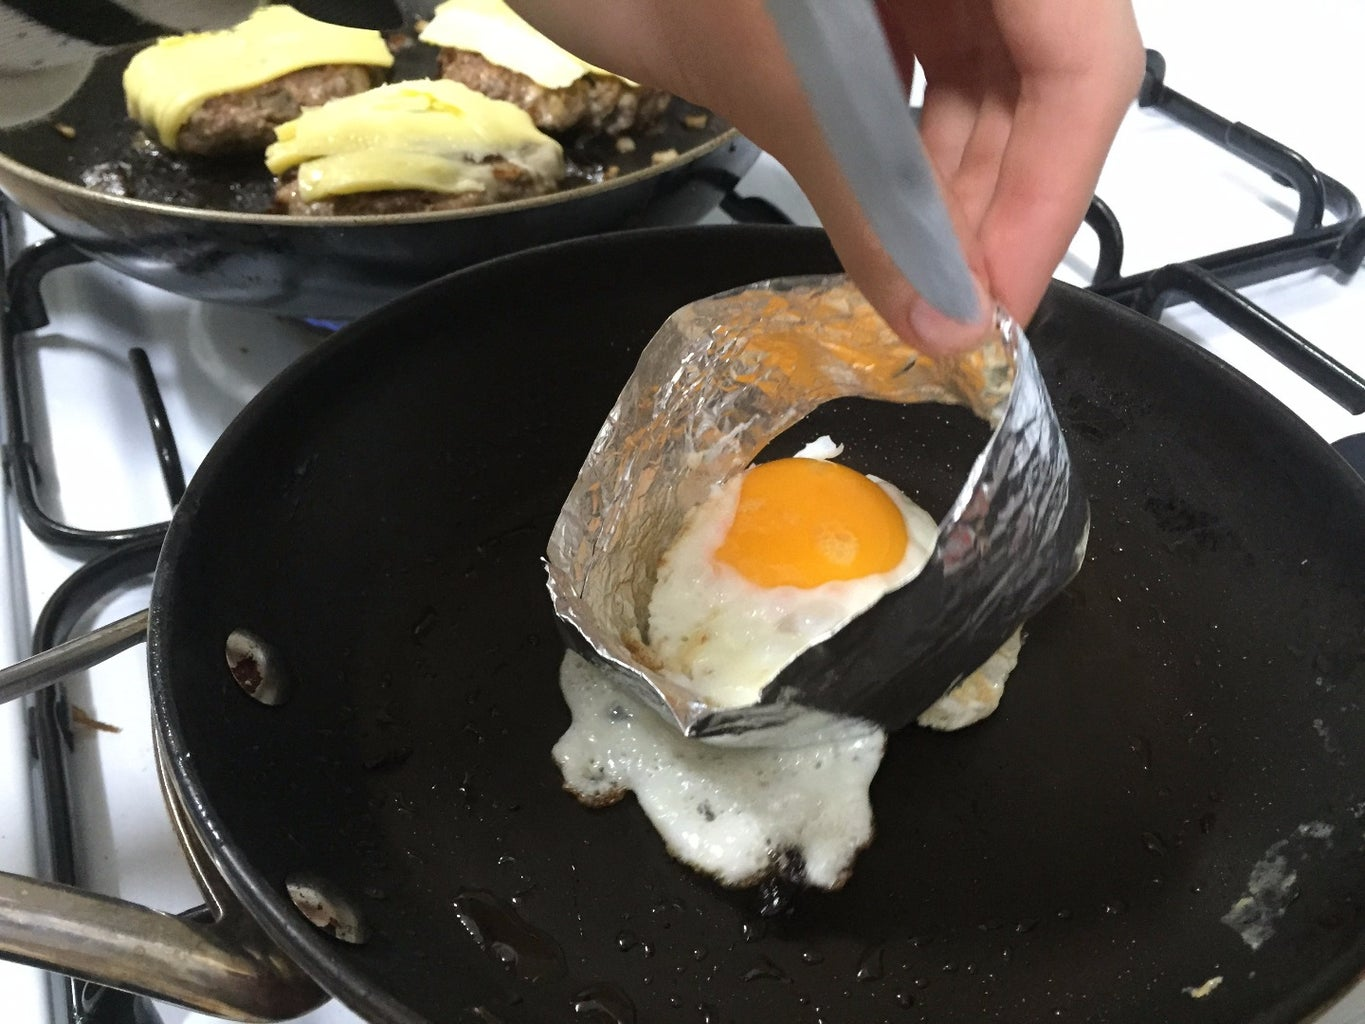 Prepare Your Toppings (Perfectly Round Fried Egg and Bacon)